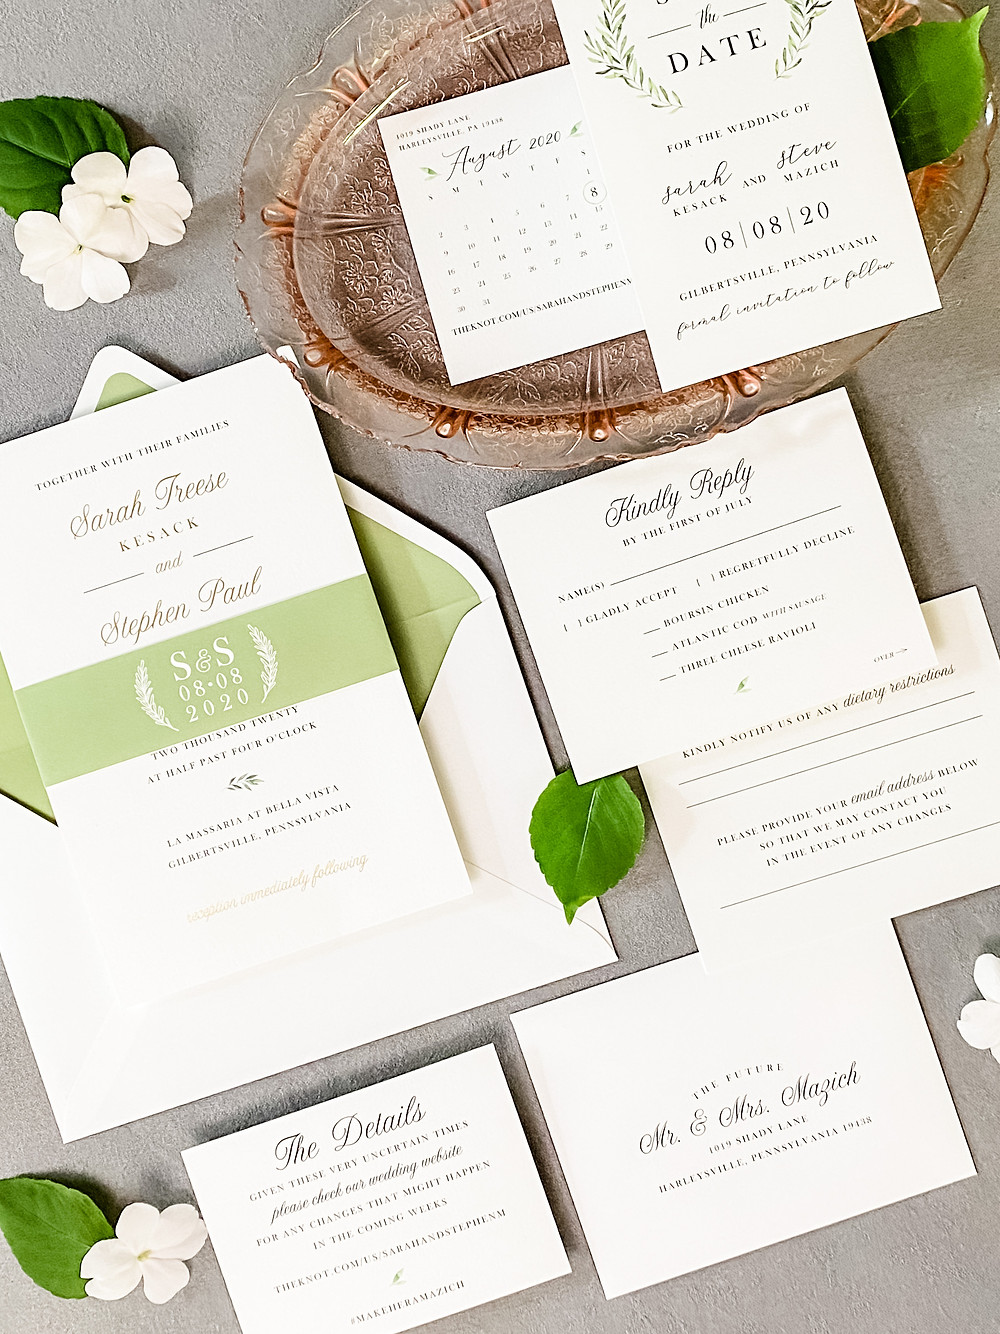 Gold and Greenery Invitations